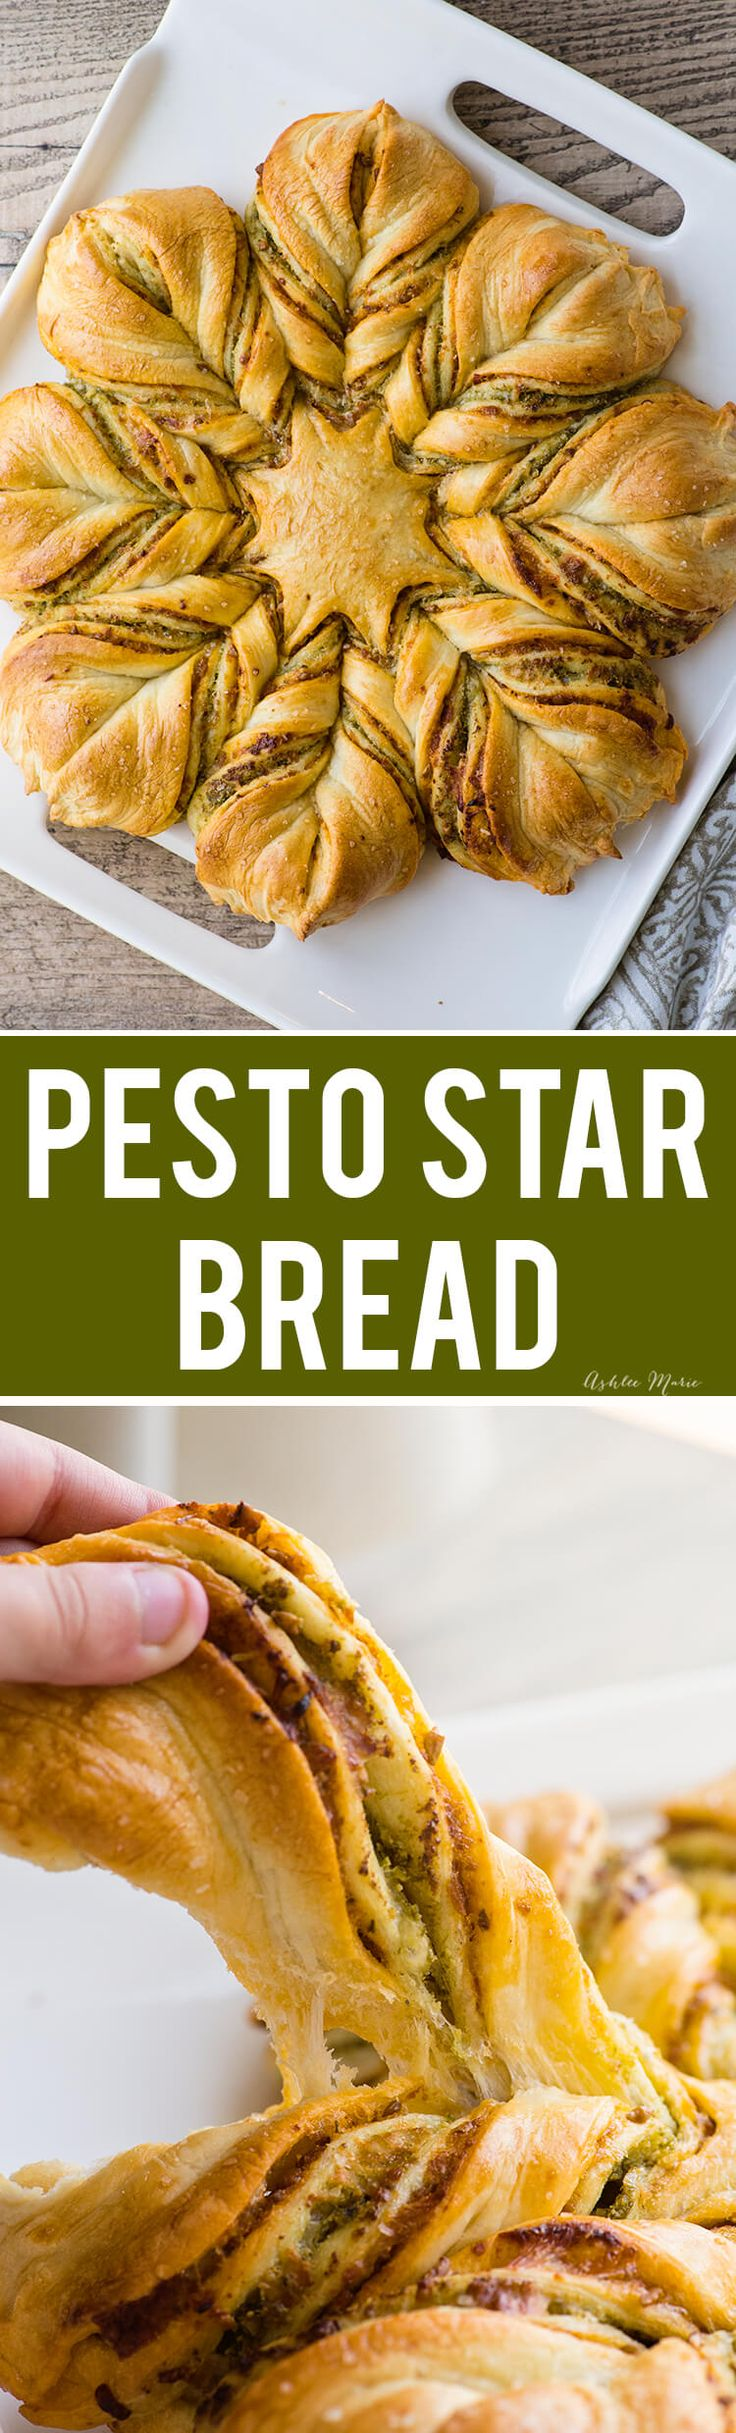 This Pesto Star Braid is as delicious as it is lovely - video tutorial